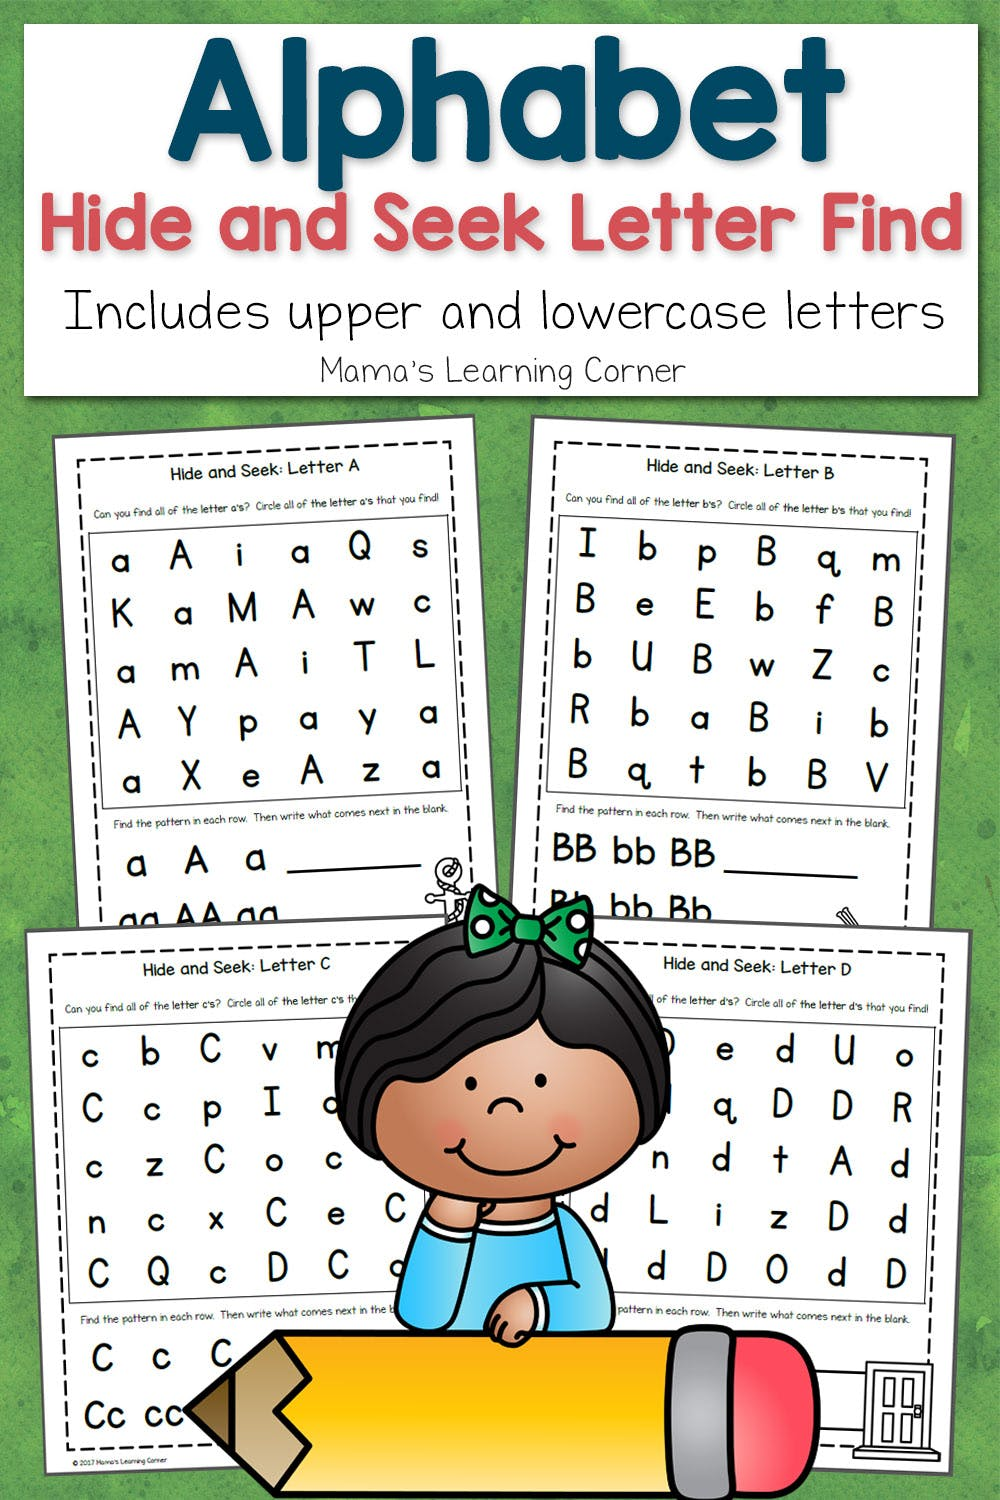 medium resolution of ABC Hide and Seek Letter Find for Preschoolers - Mamas Learning Corner